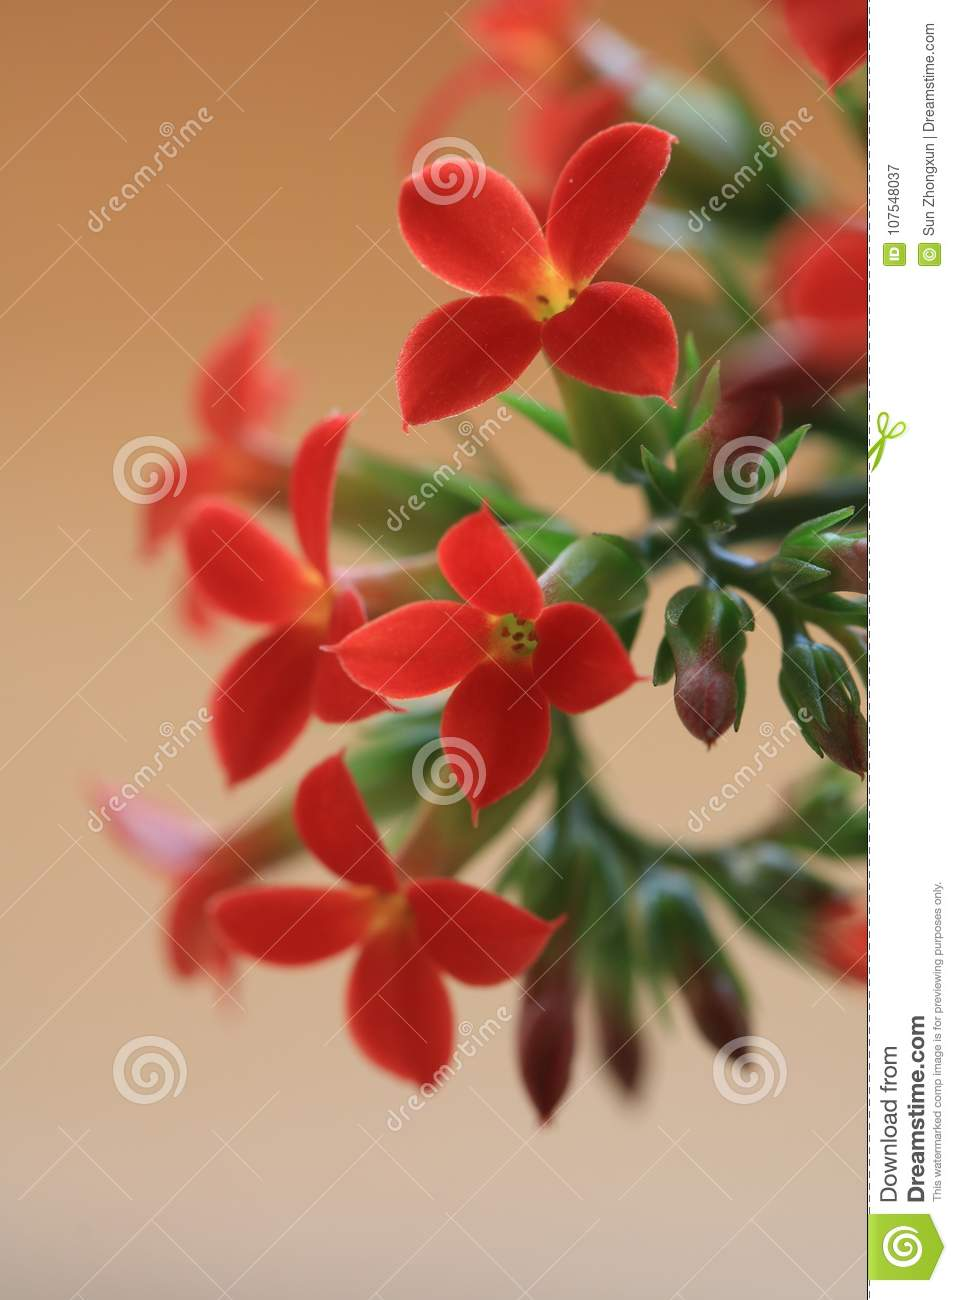 Garan dishlongevity flowers stock image image of herbs implied meaning of plant culture is considered auspicious longevity lucky flower another name for longevity flowers izmirmasajfo